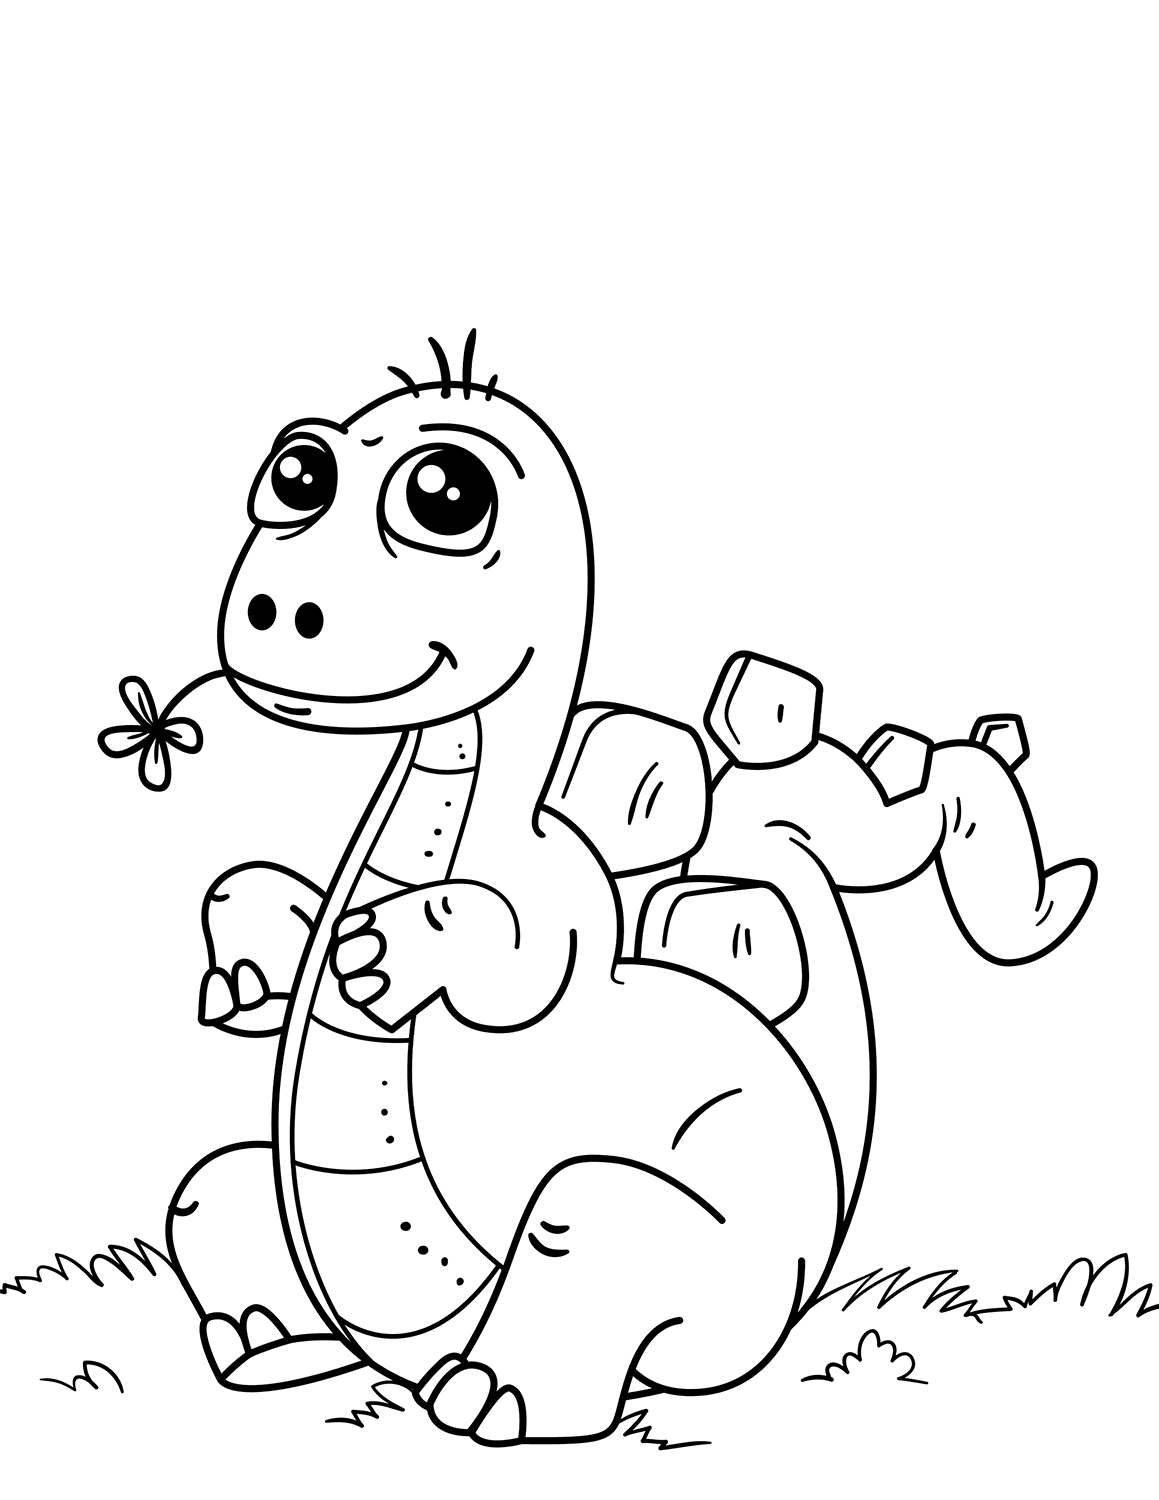 dinosaur colouring pictures to print coloring pages dinosaur free printable coloring pages to dinosaur colouring pictures print